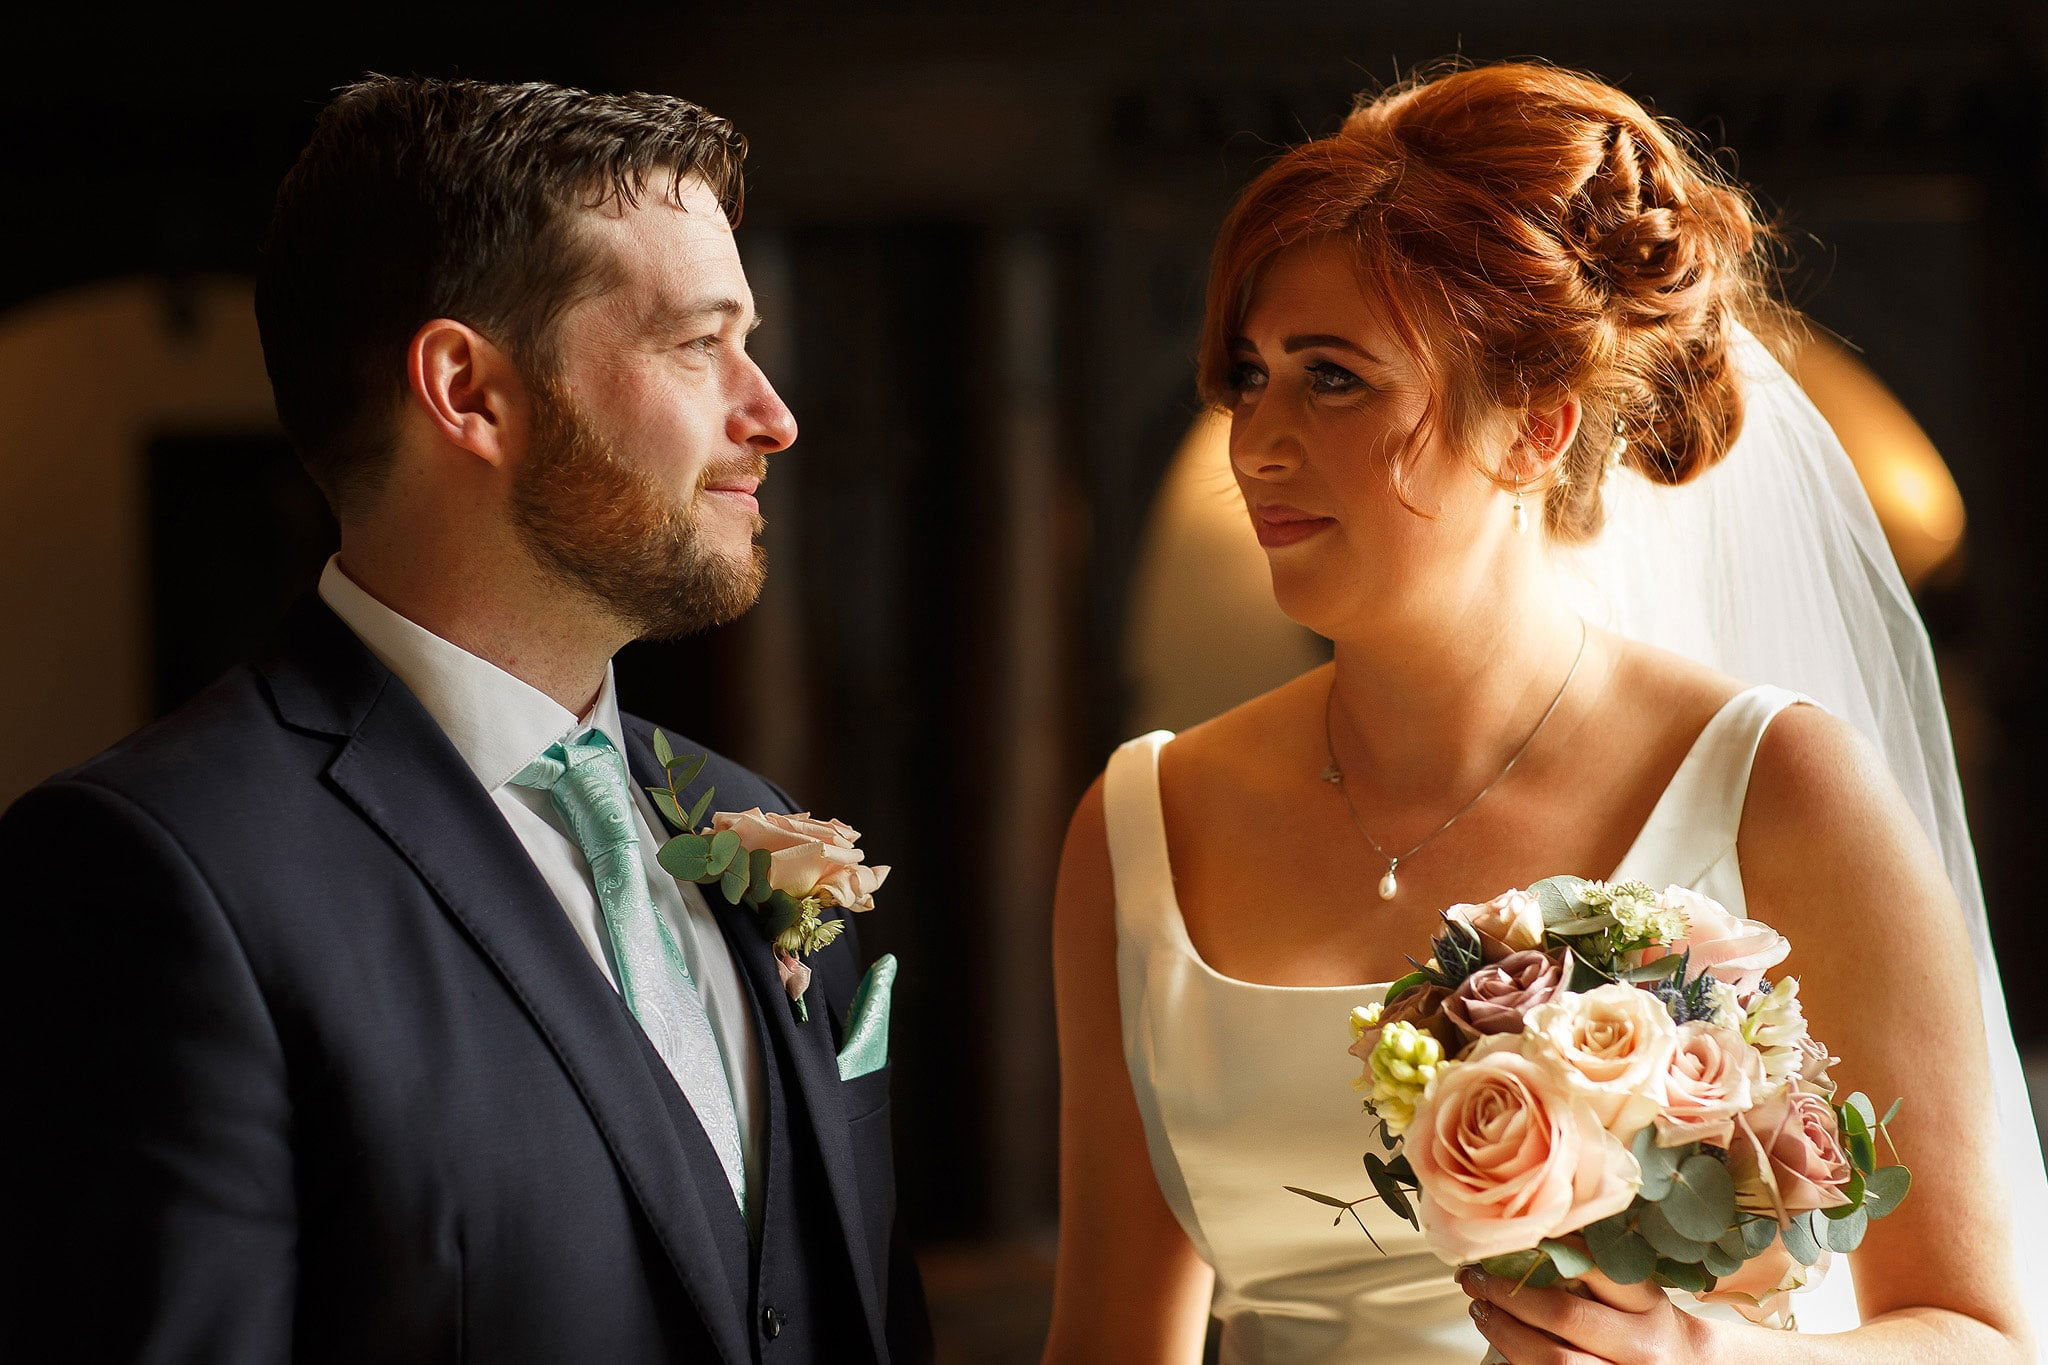 Bride and groom looking into each others eyes during wedding ceremony at Oakwell Hall Country Park